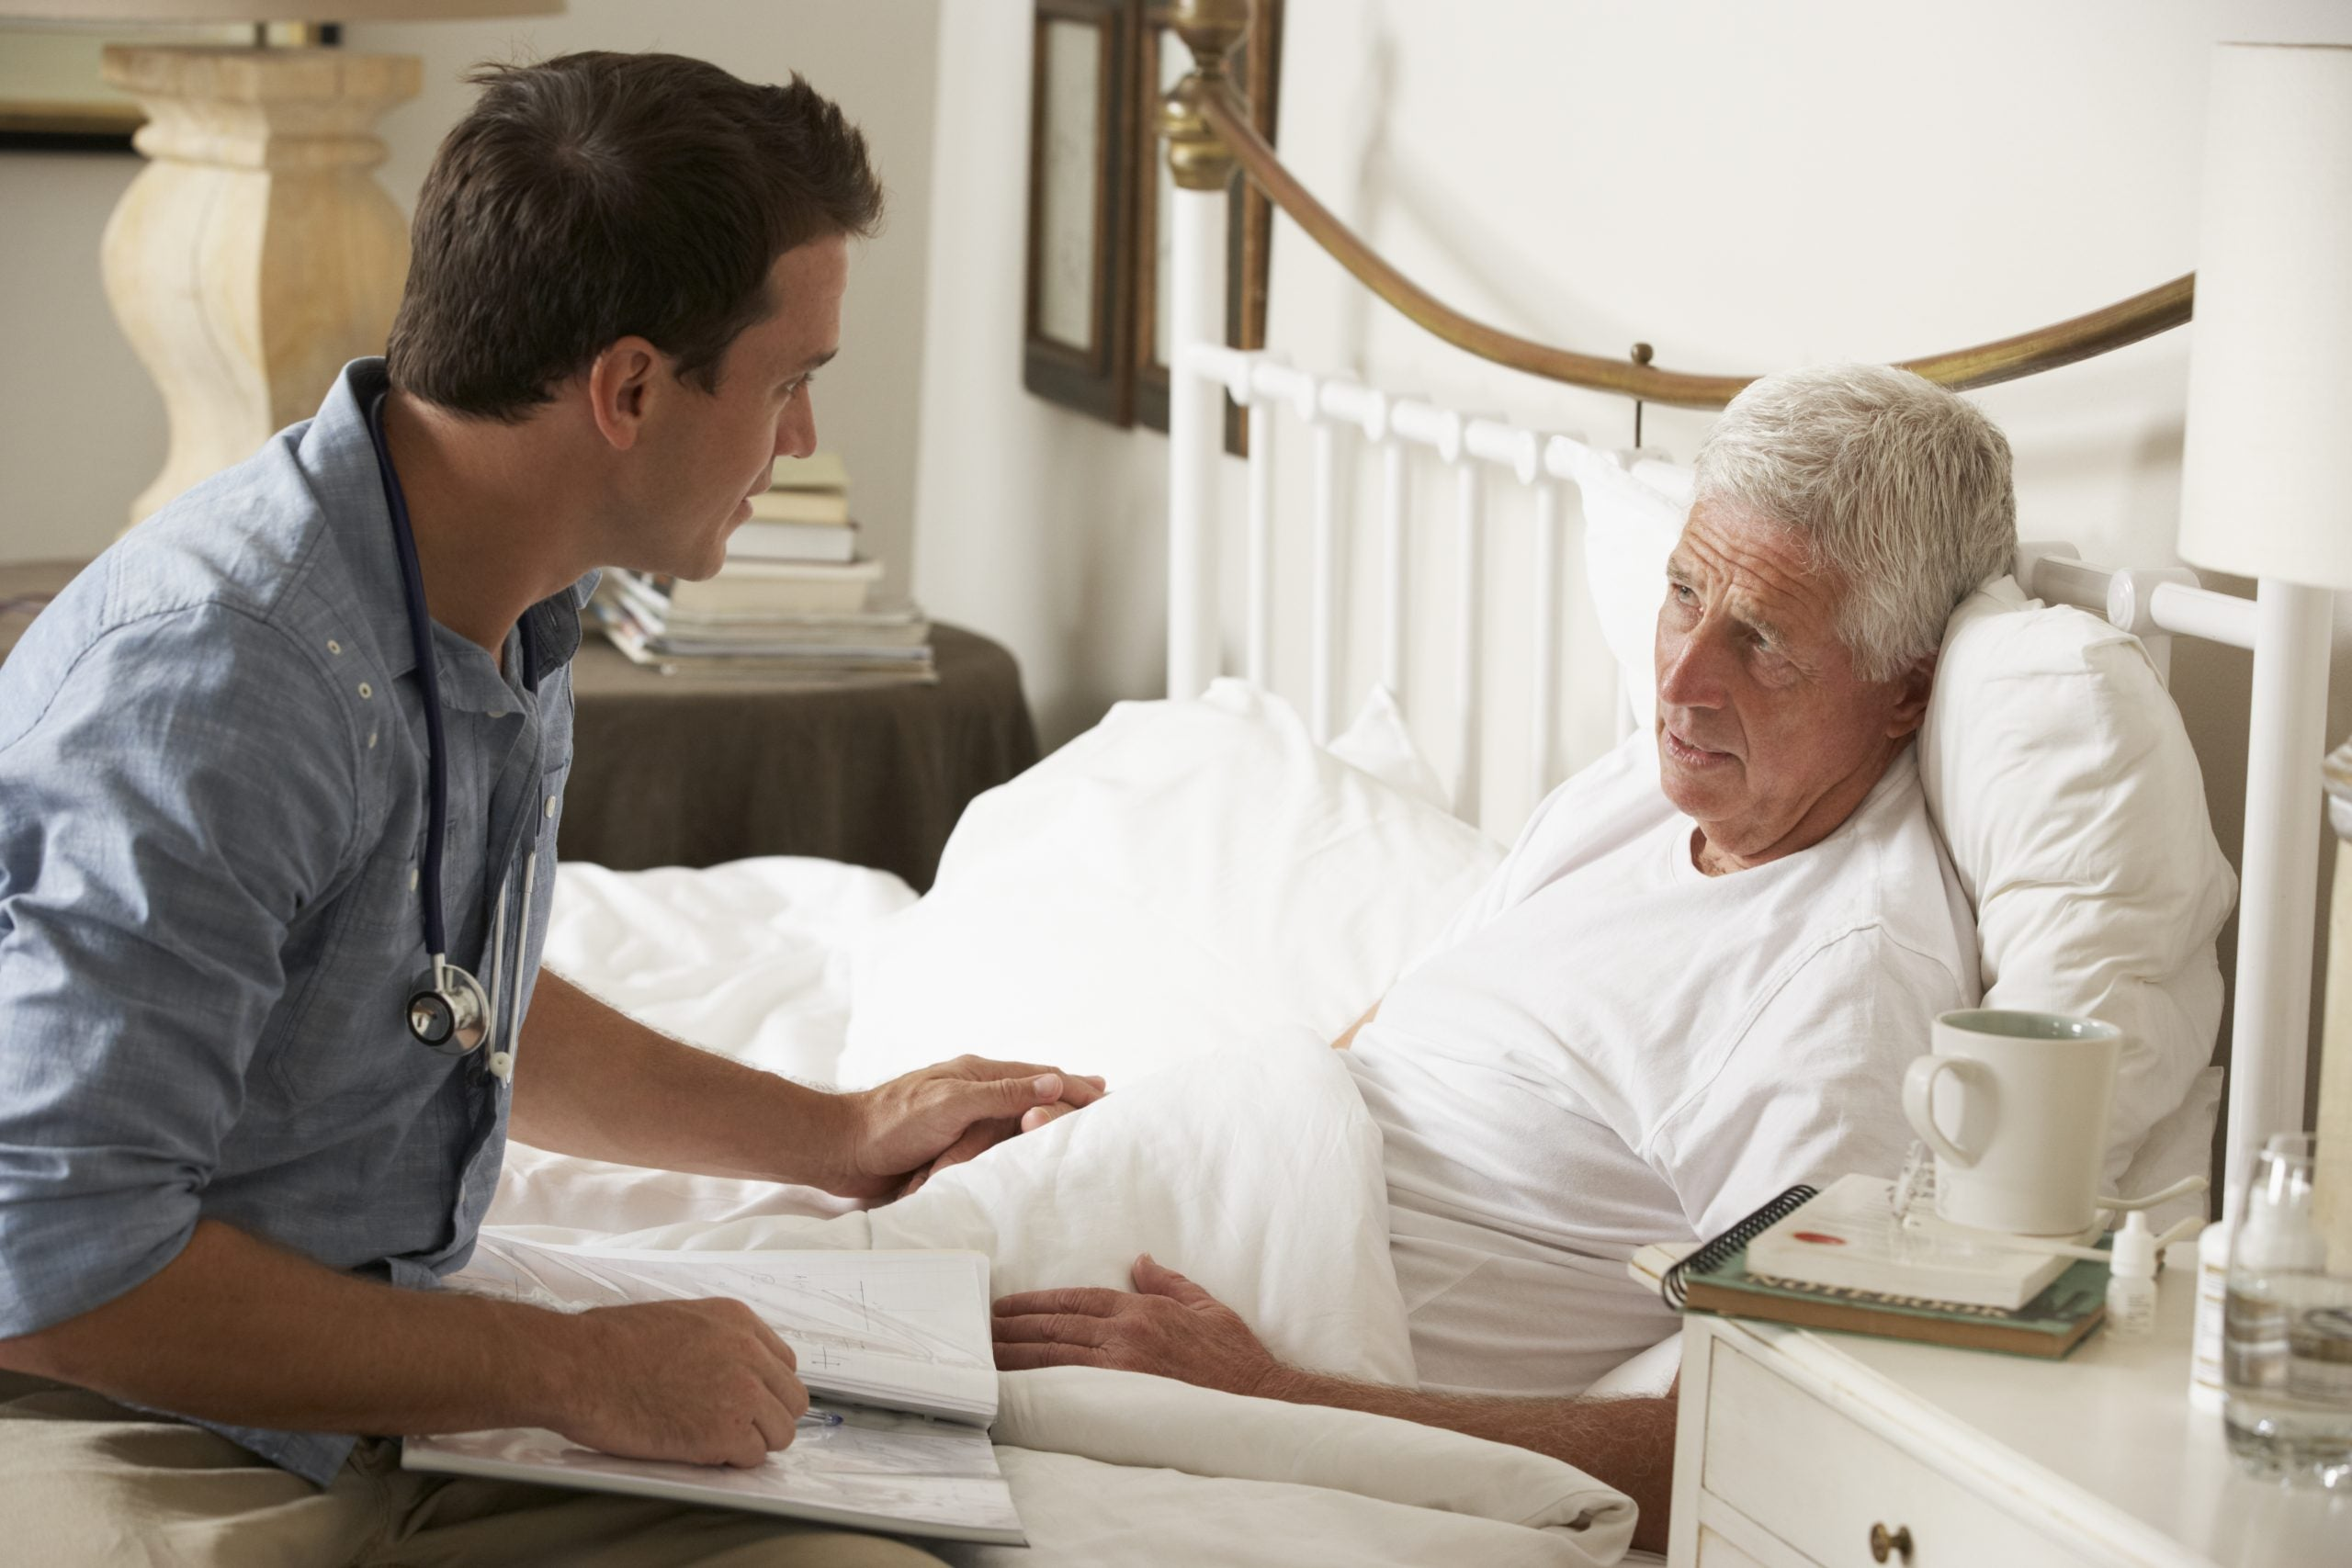 The vote to scrap GP home visits is a stark illustration of the NHS's unrelenting crisis